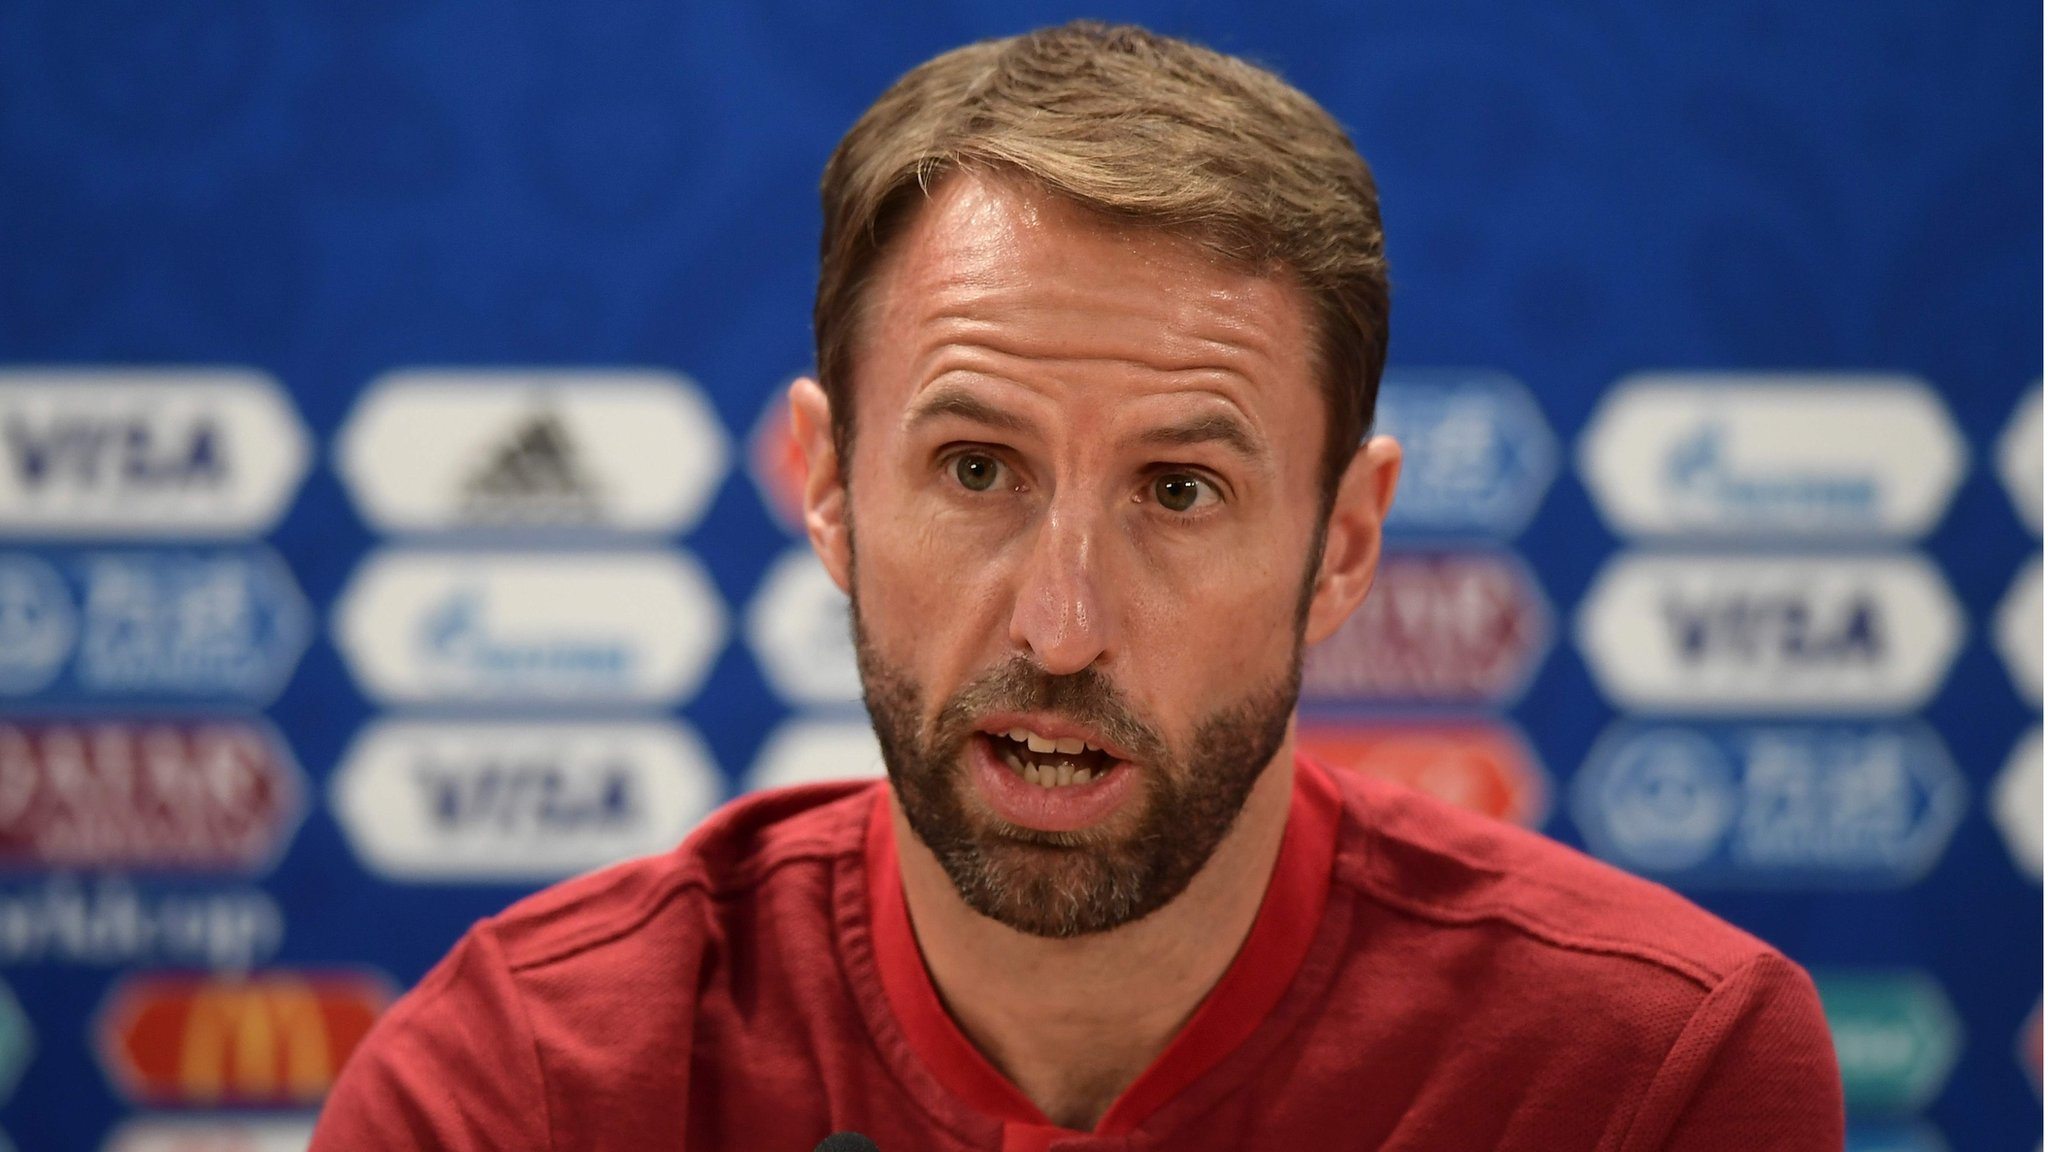 World Cup 2018: England are in a difficult group, says Gareth Southgate